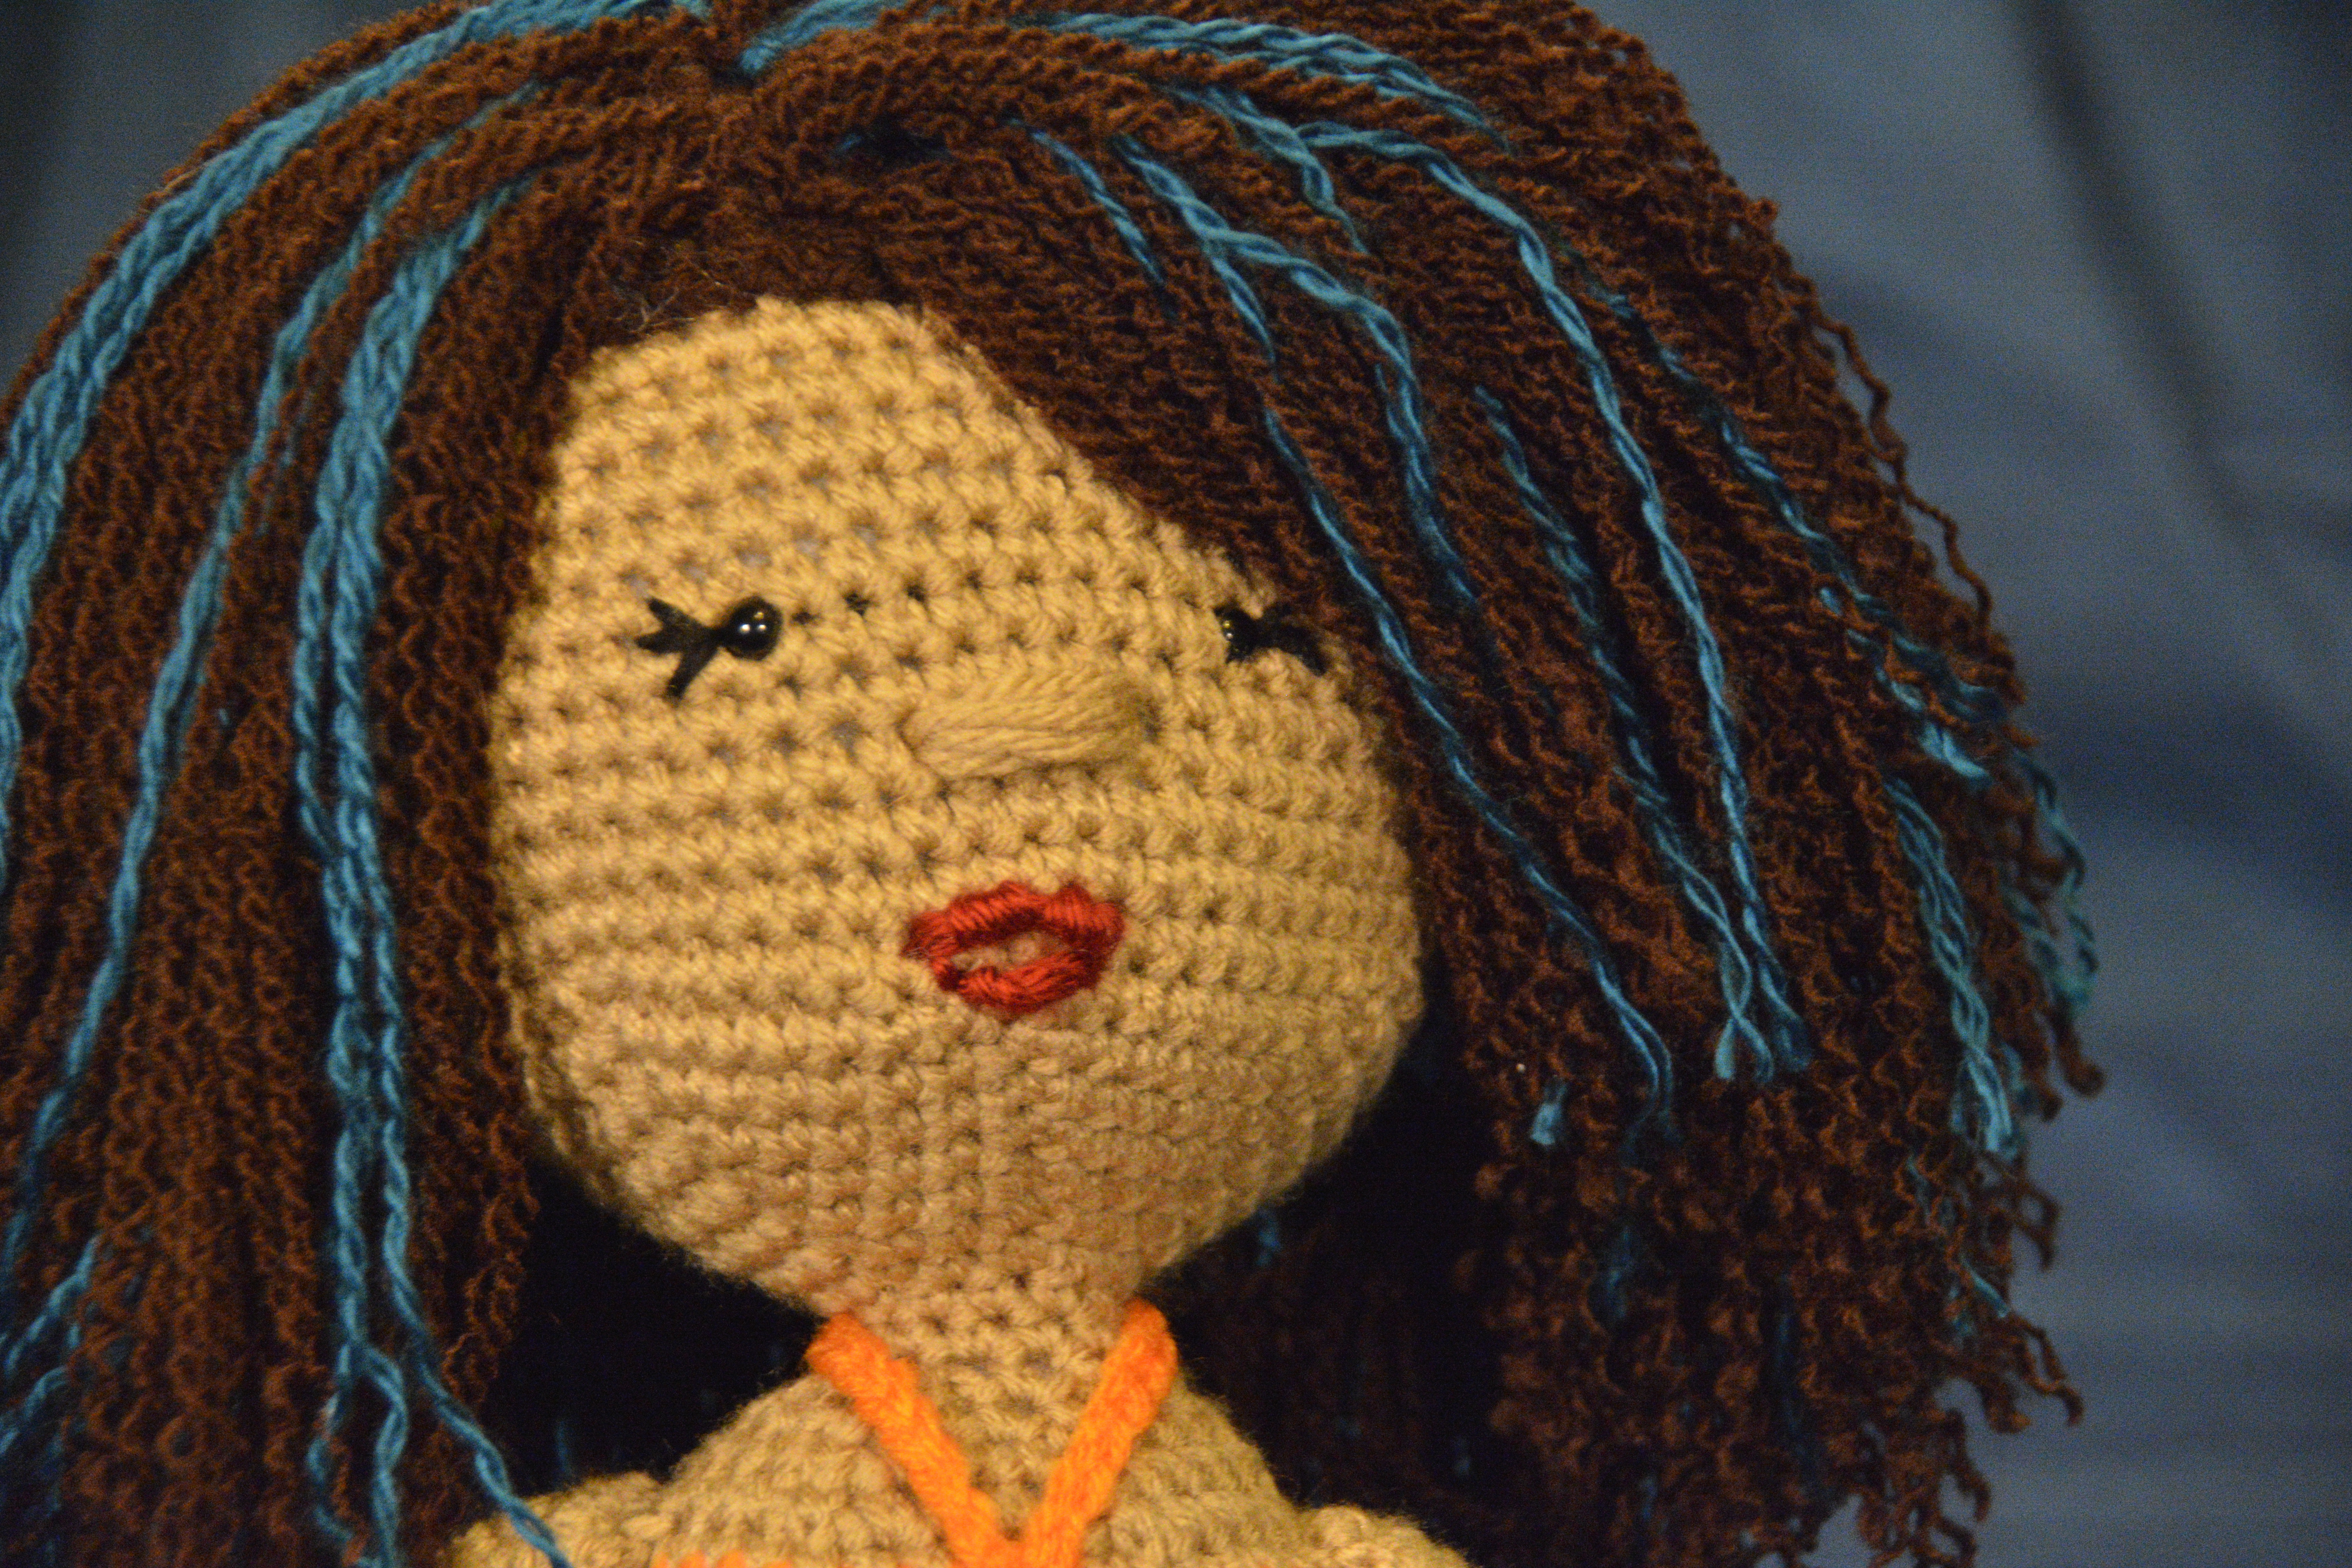 tan-skinned deaf doll with dark brown wavy hair with teal streaks; plush deaf dolls with hearing aids and cochlear implants